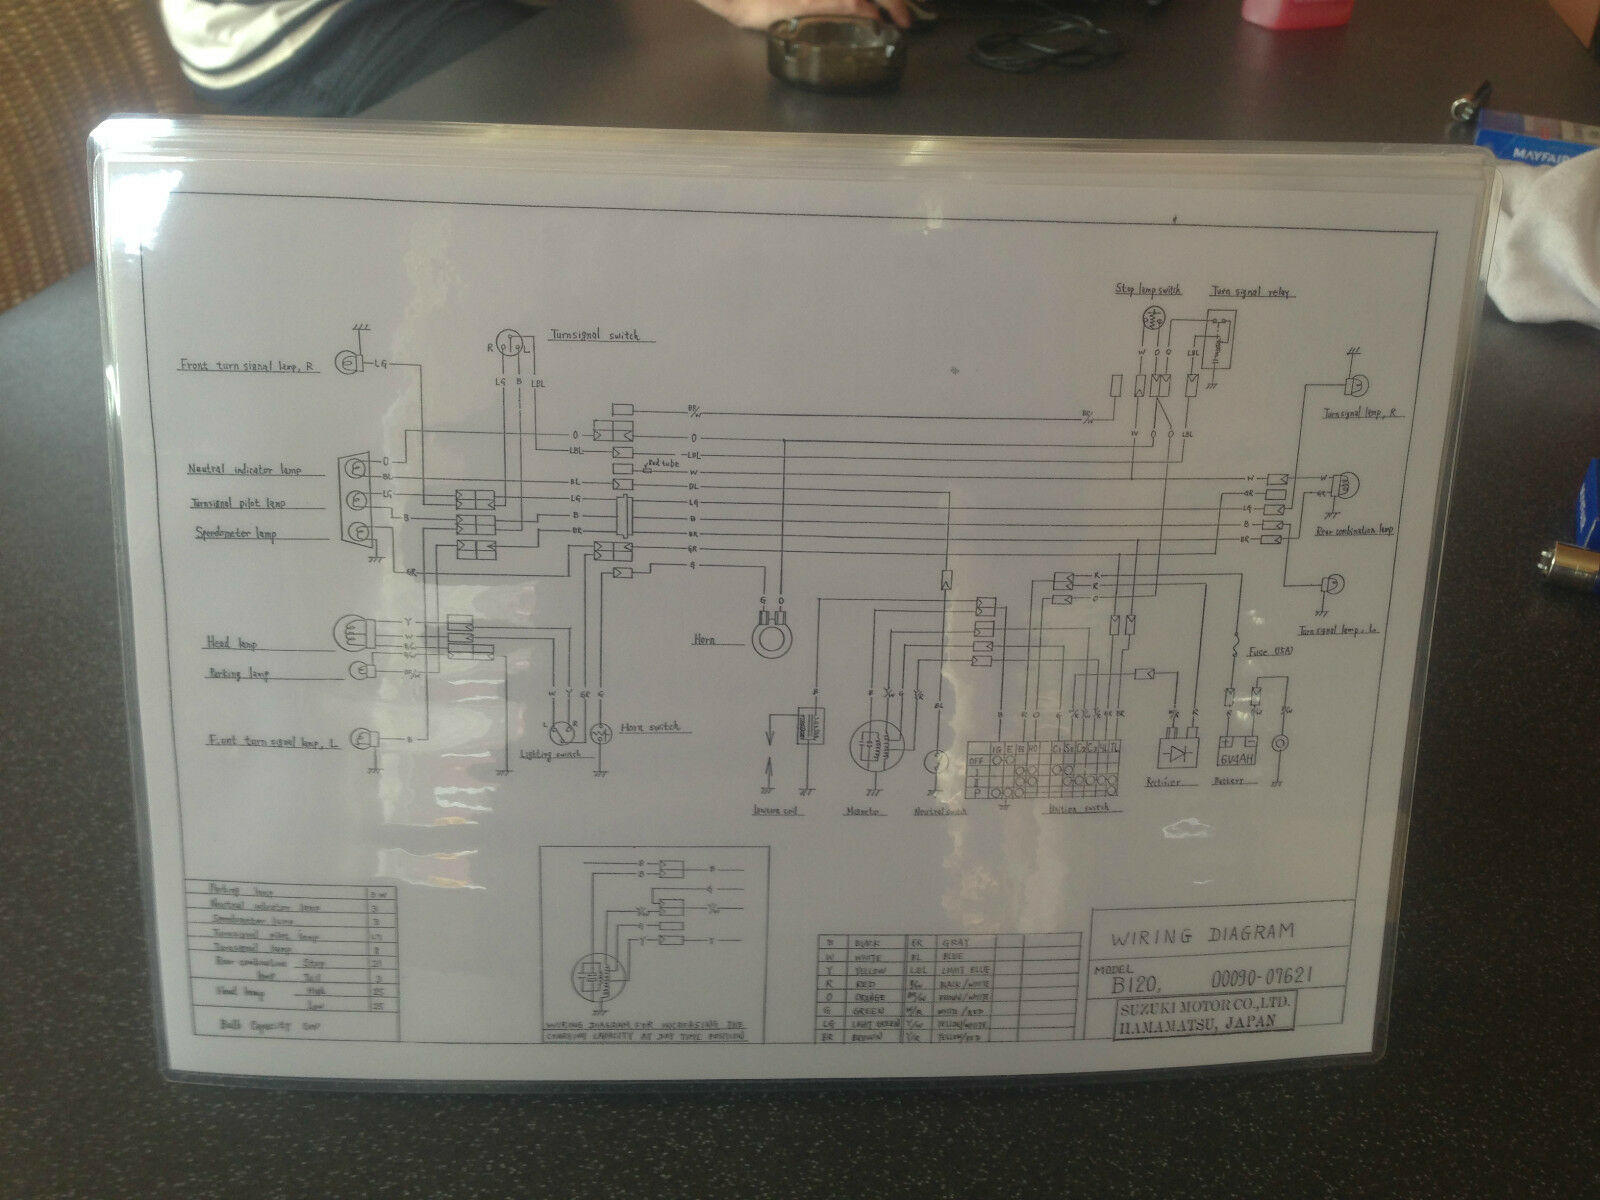 Suzuki B120 Wiring Diagram 150 Picclick Uk Sv650 Electrical 1 Of See More